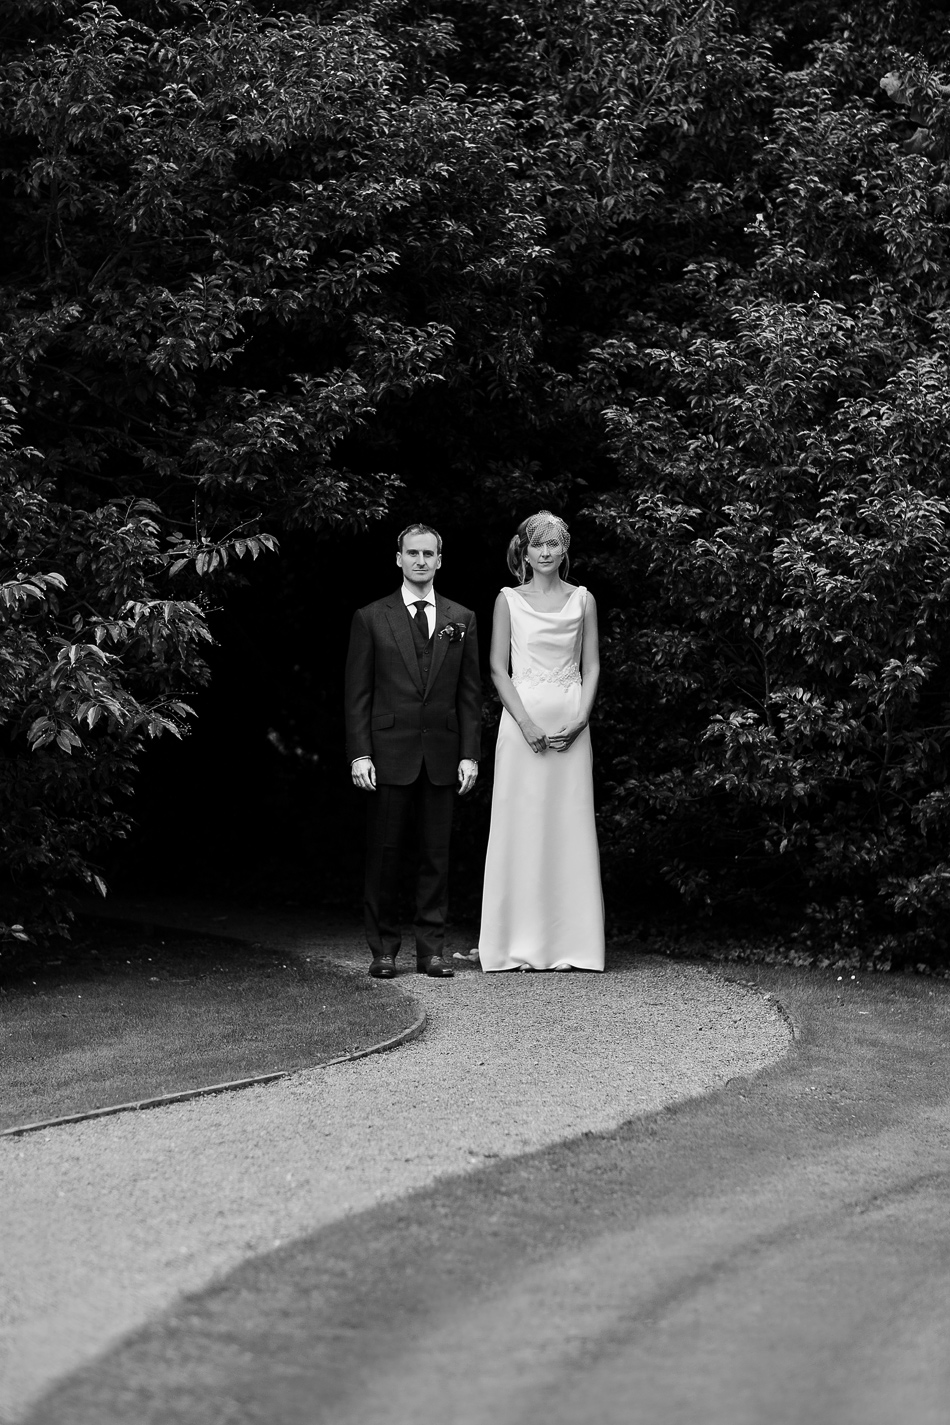 black and white wedding photographer in the garden a portrait of a bride and groom rustic wedding